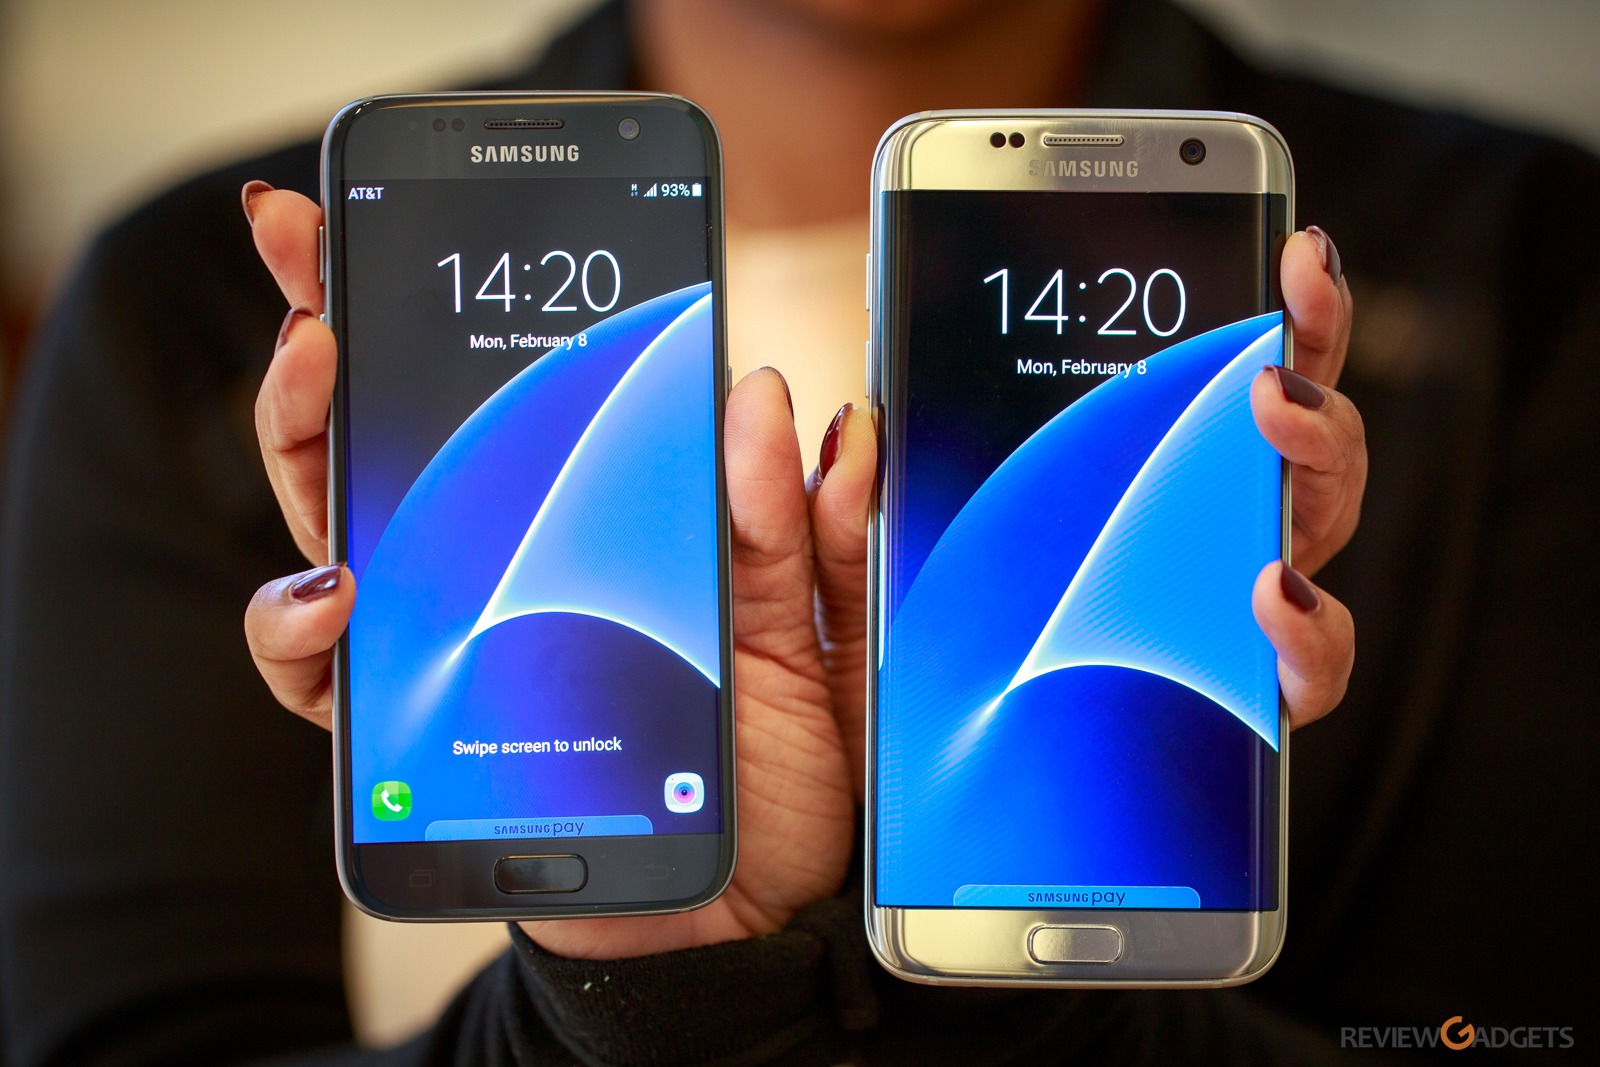 Galaxy S7, Galaxy S7 Edge – A lead for Samsung over Apple